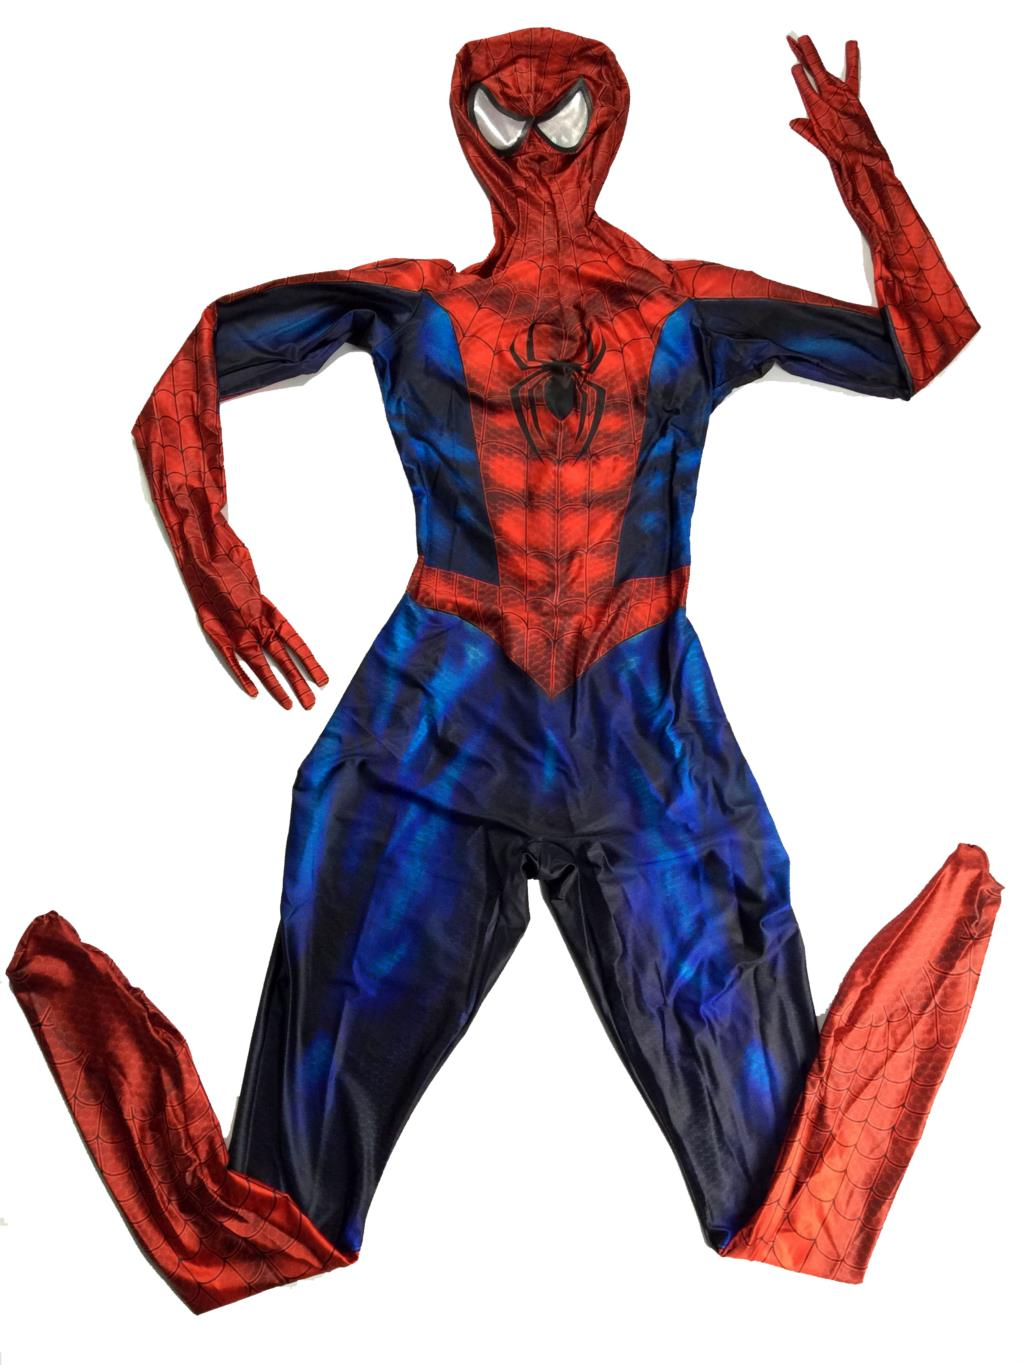 Spider Man Halloween Costume Adults.Us 54 1 8 Off Custom Amazing Spider Man Spiderman Halloween Costumes Men Adult Costume Adult Homecoming Traje Black Red Suit Cosplay Zentai In Movie